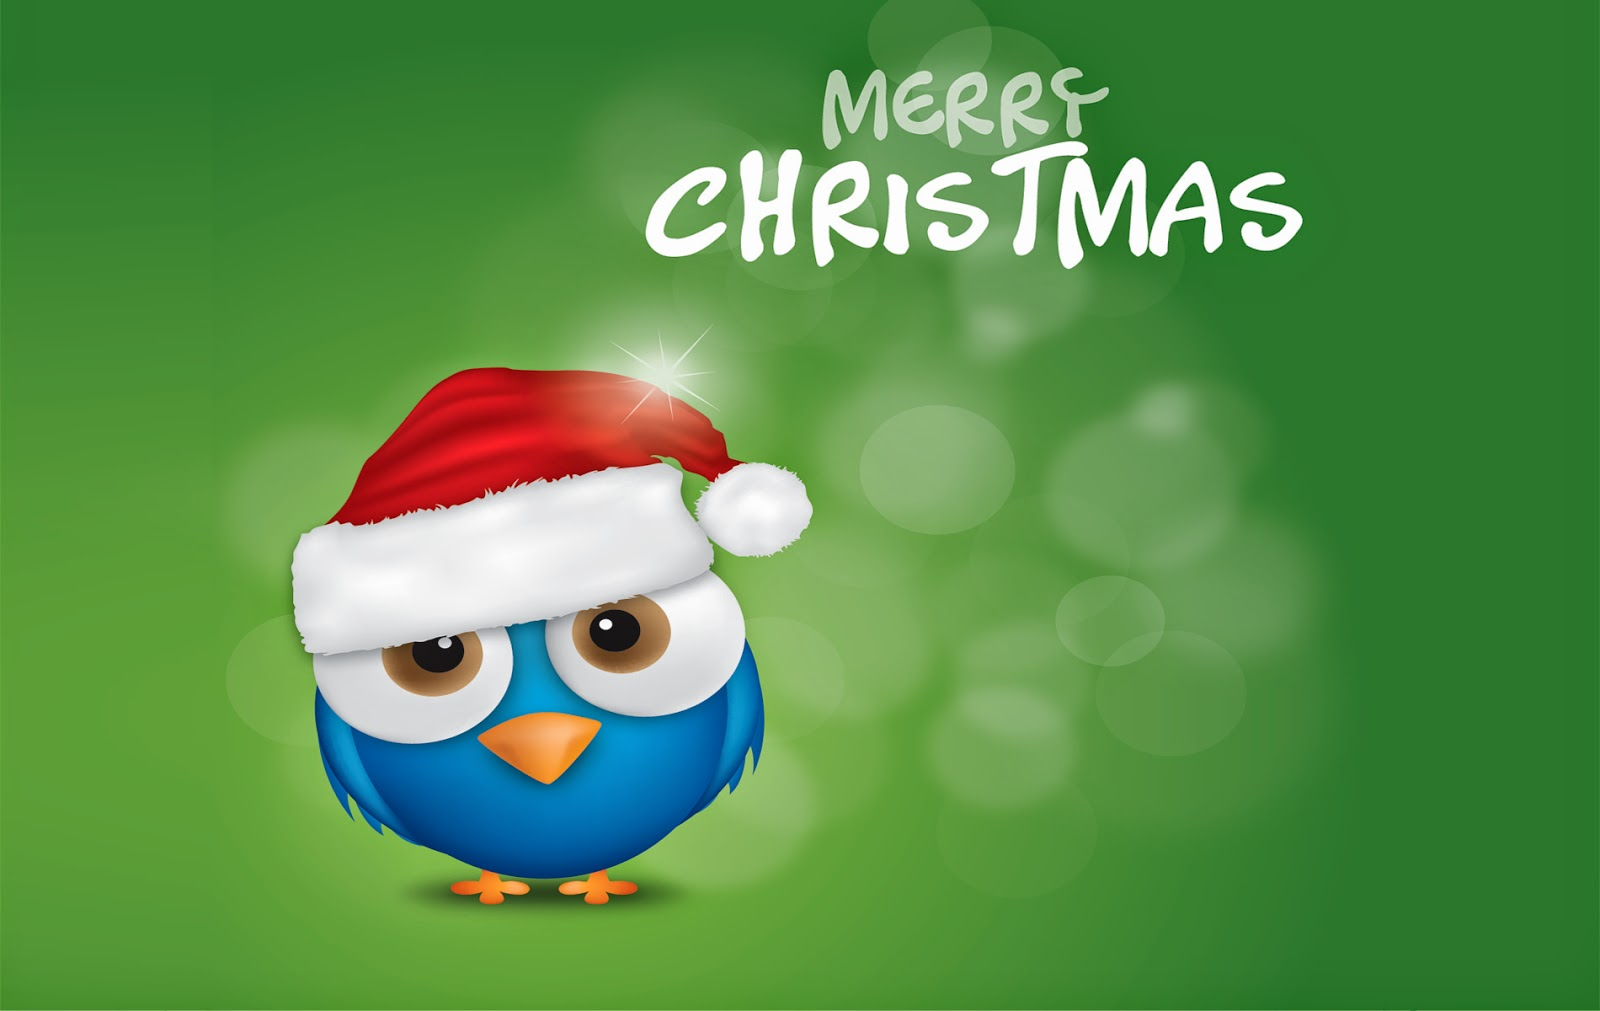 cute merry christmas background full hd 1080p wallpapers | pixhome